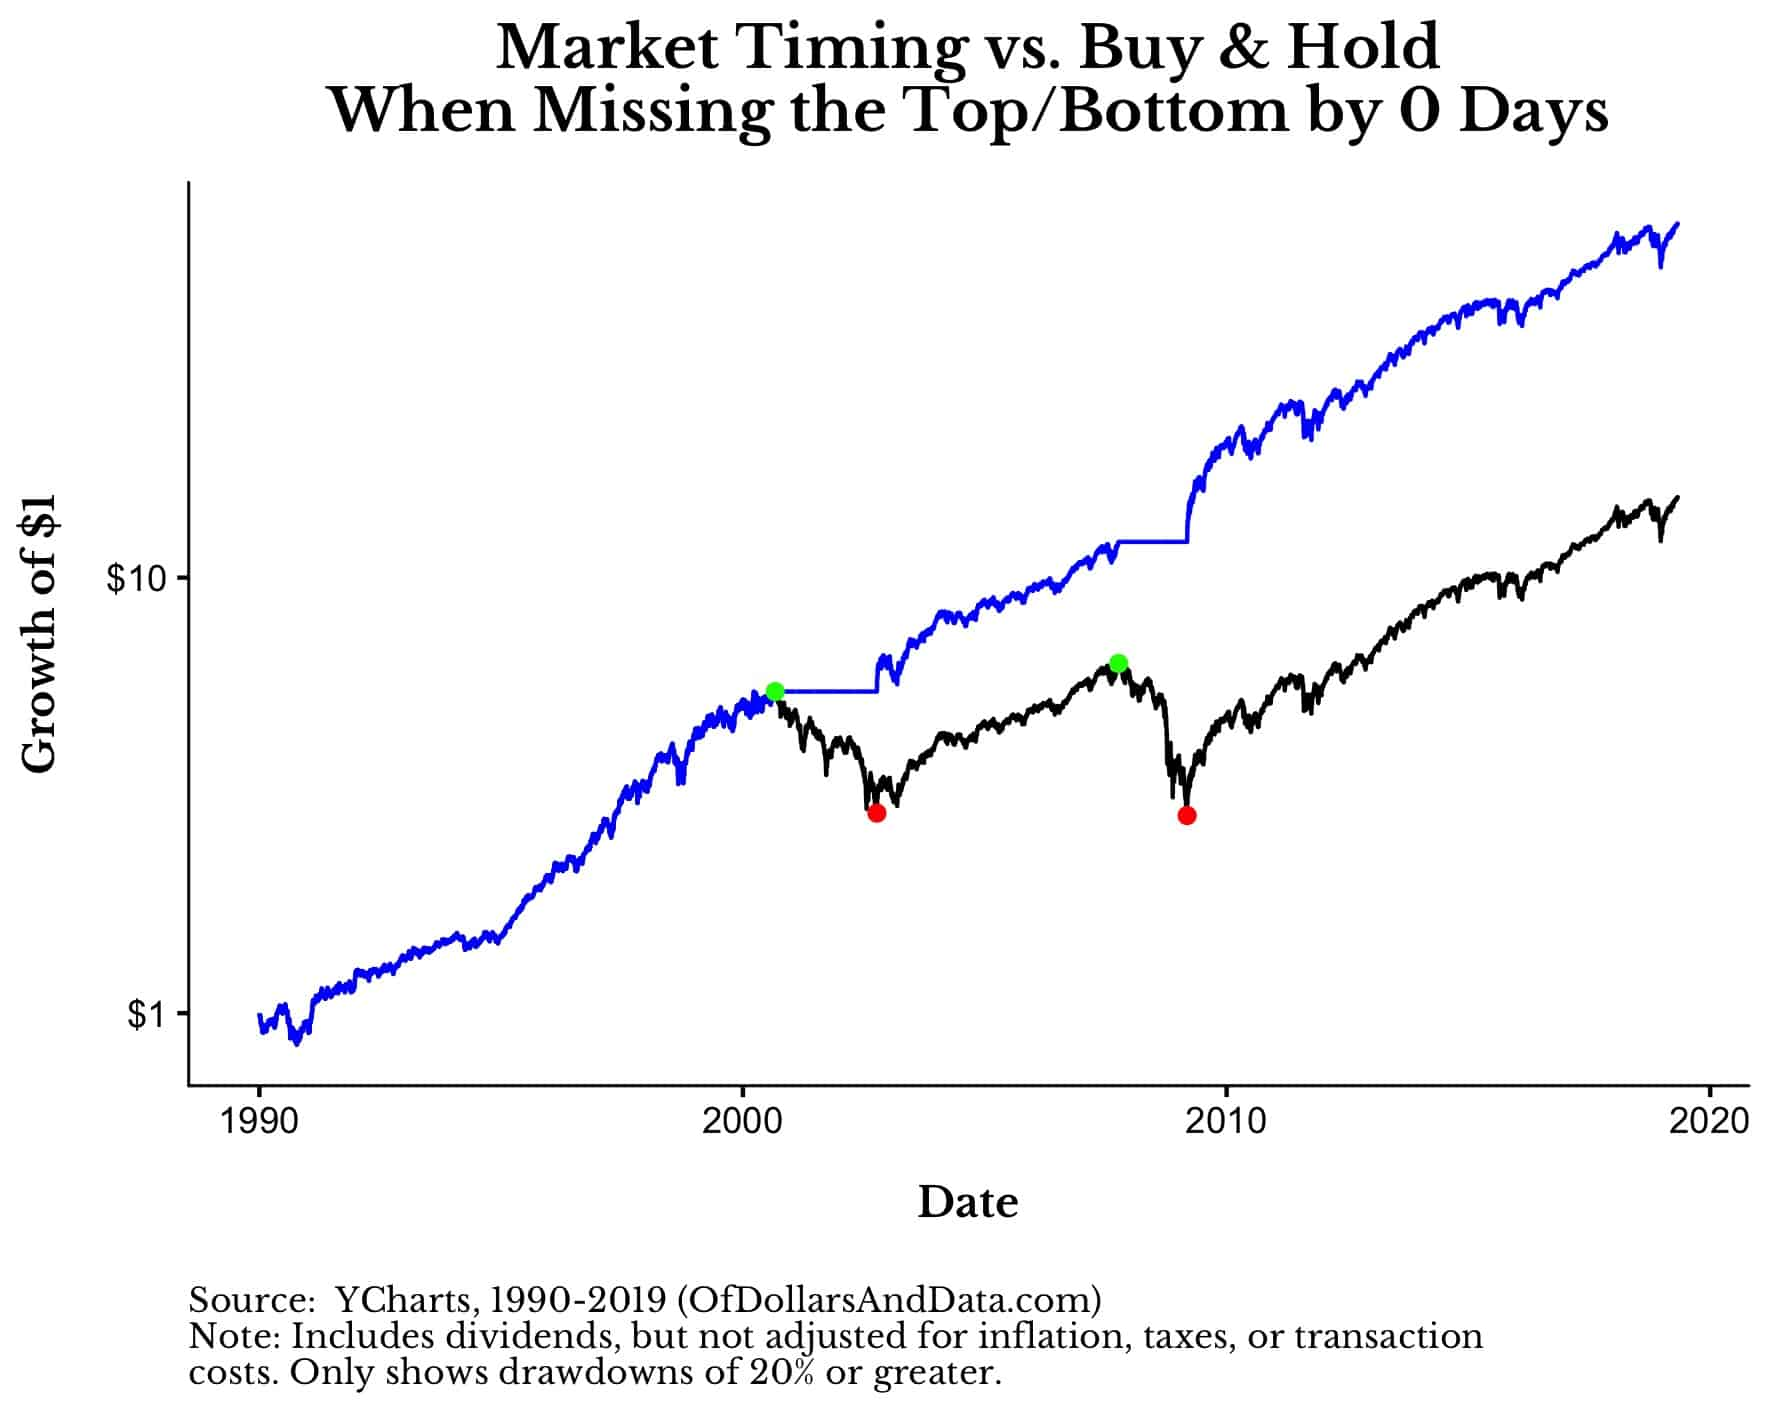 buy and hold vs market timing for the s&p 500 since 1990 with no timing lag